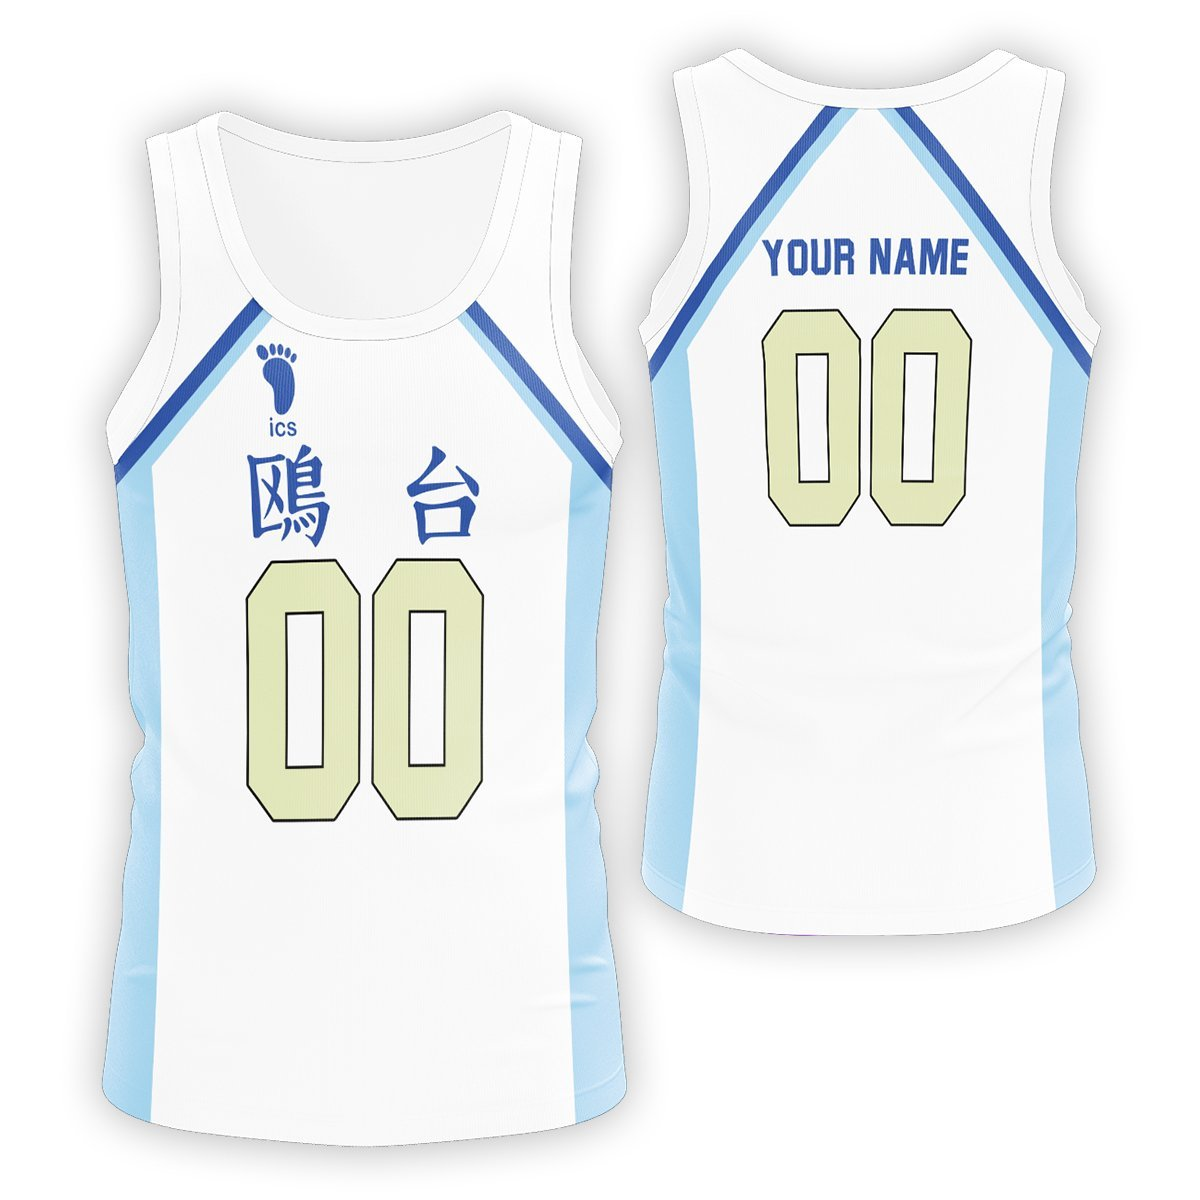 Personalized Team Kamomedai Unisex Tank Tops FDM3107 S Official Anime Swimsuit Merch